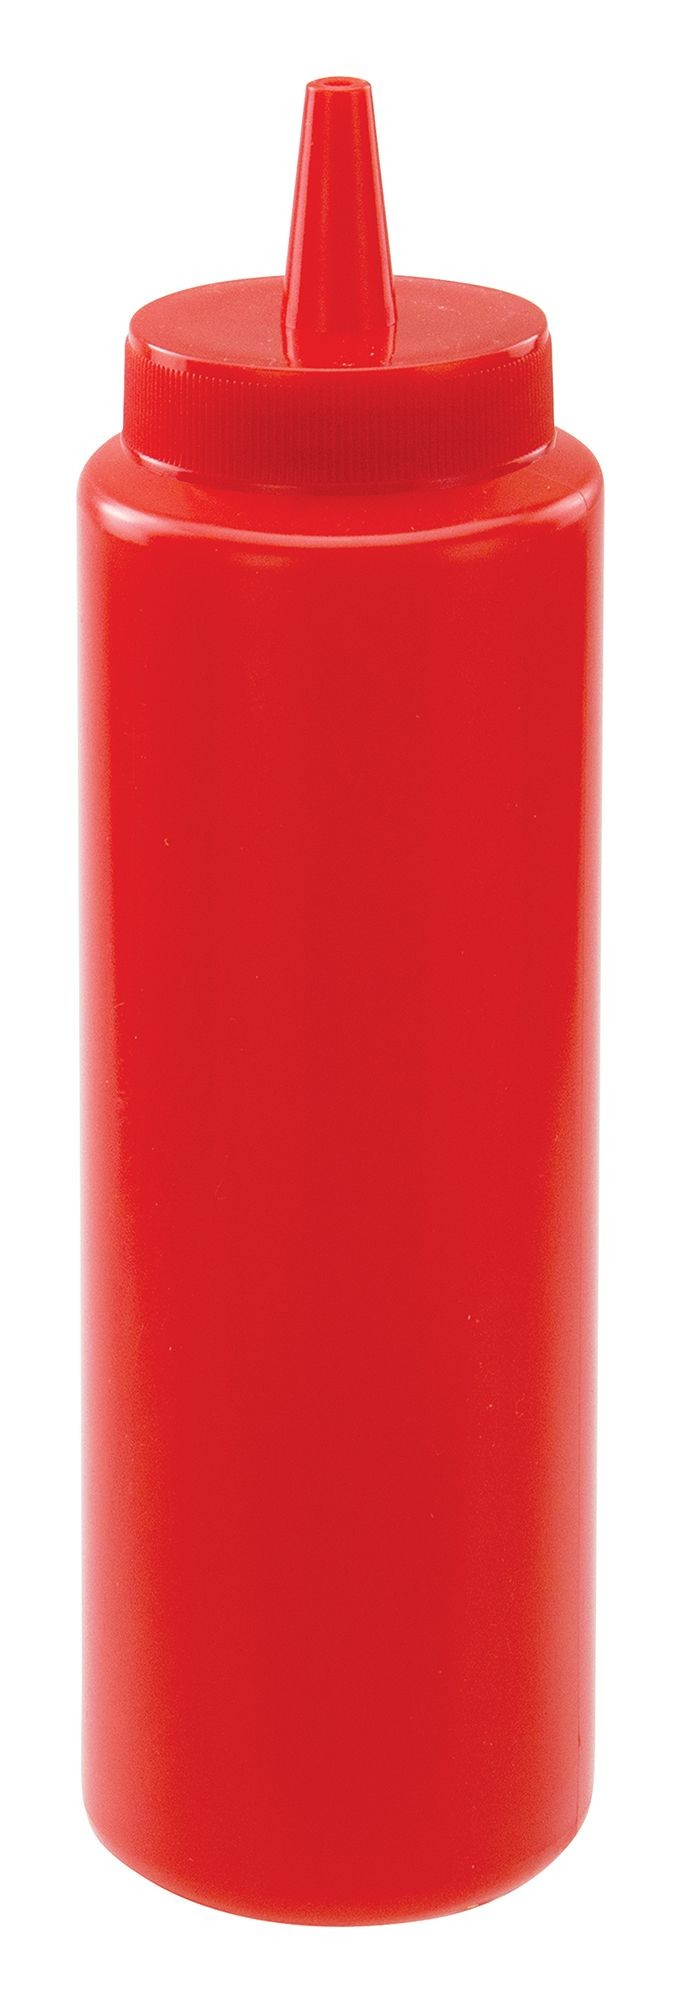 Red Plastic 8 Oz. Squeeze Bottle